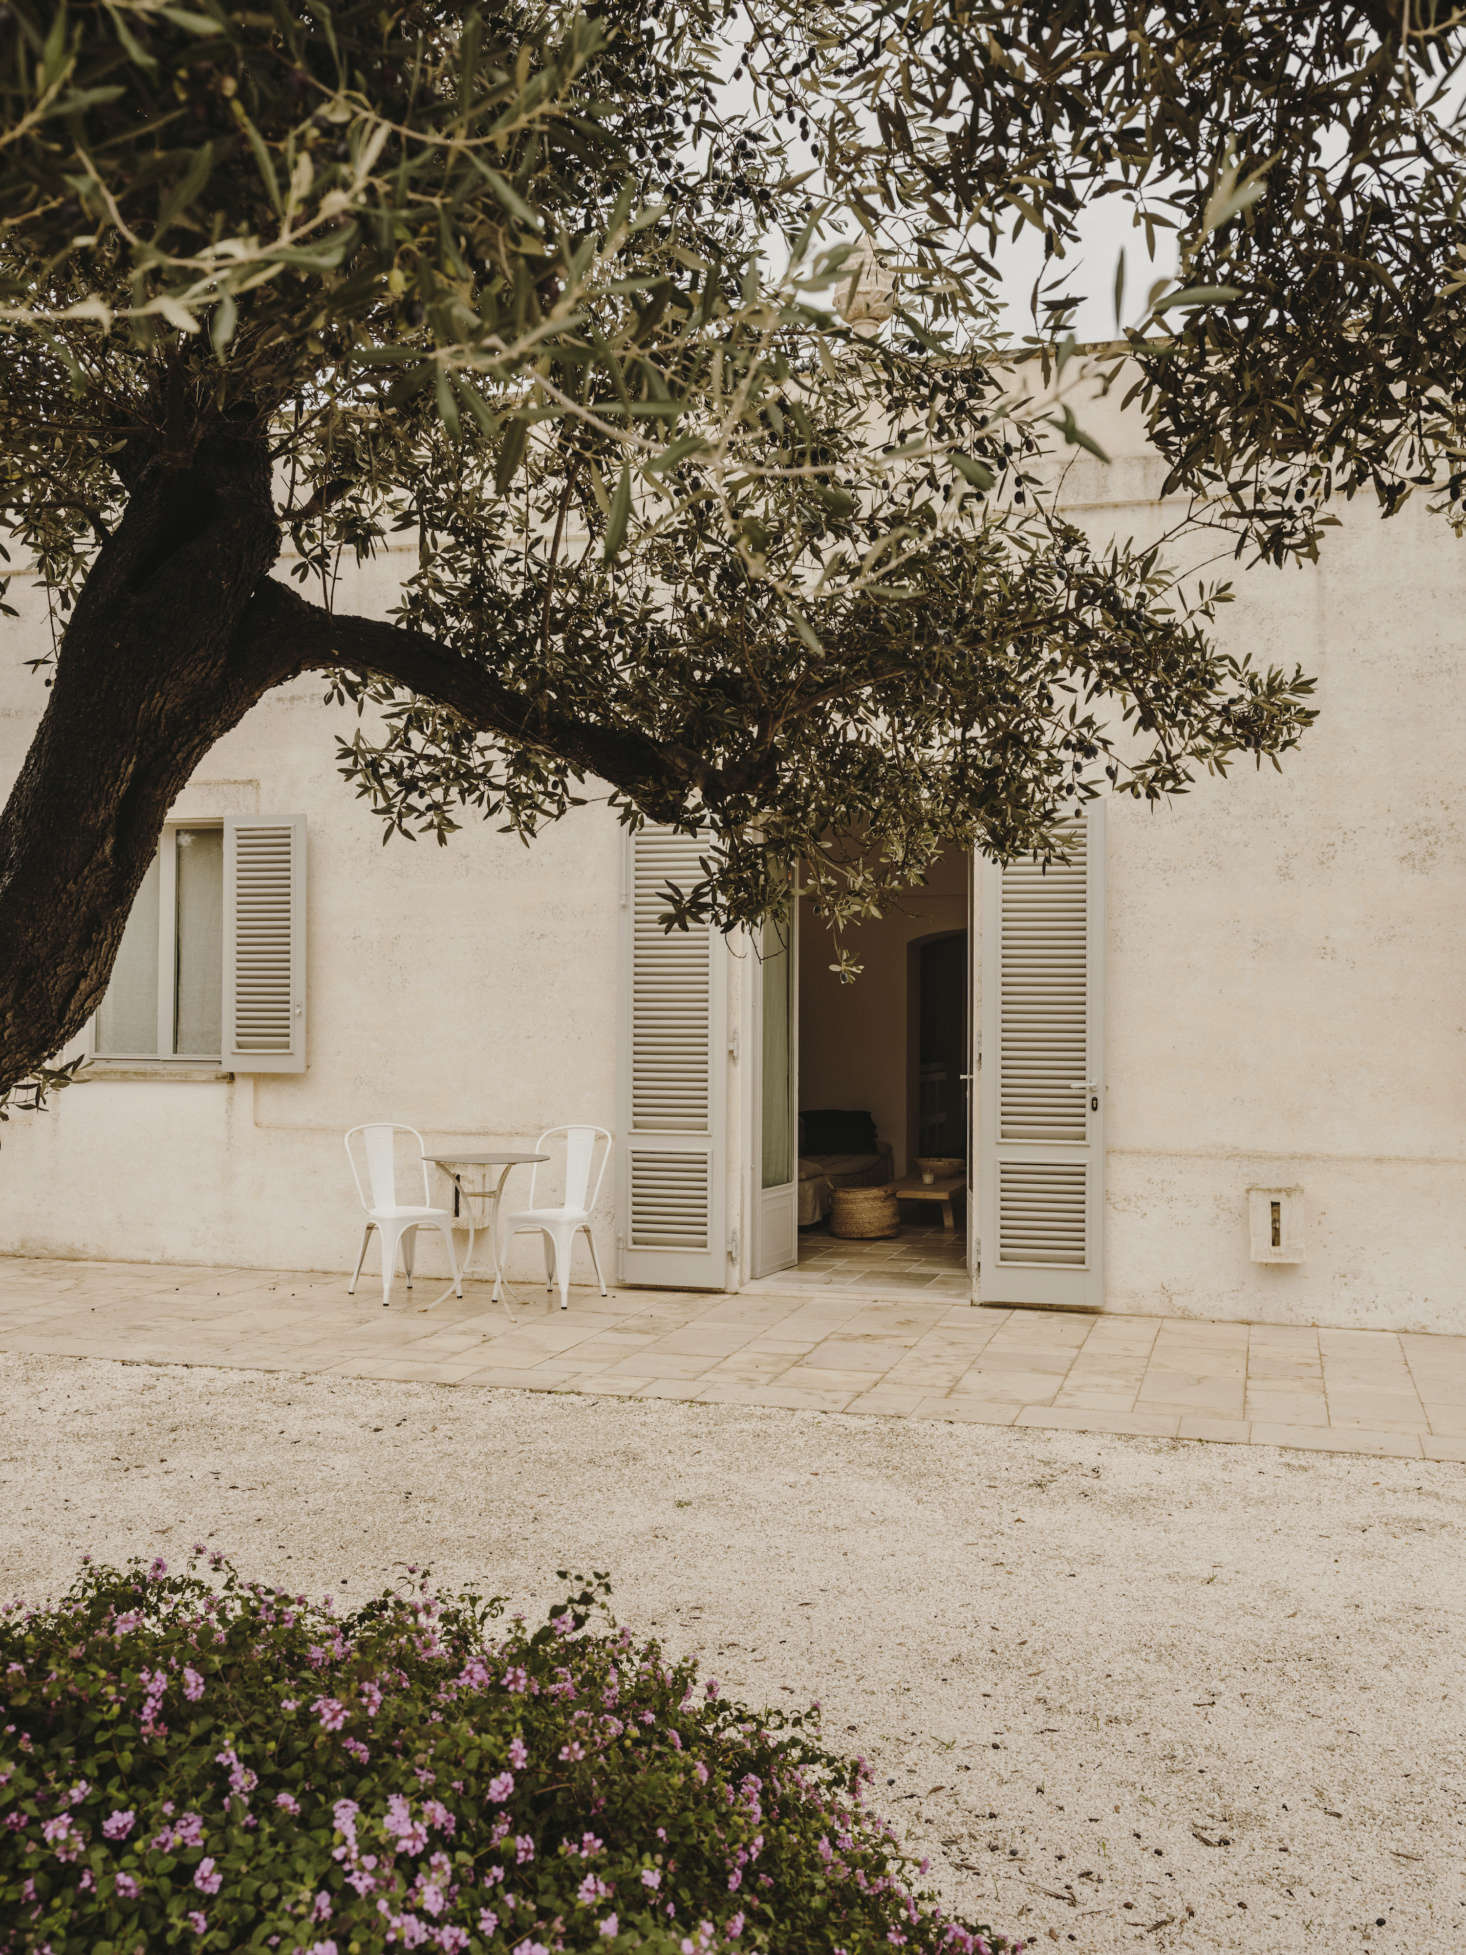 At Villa Castelluccio in the countryside of Puglia, remodeled by architect Andrew Trotter, gravel courtyards shaded by olive trees invite guests into the garden. Photograph by Salva López.